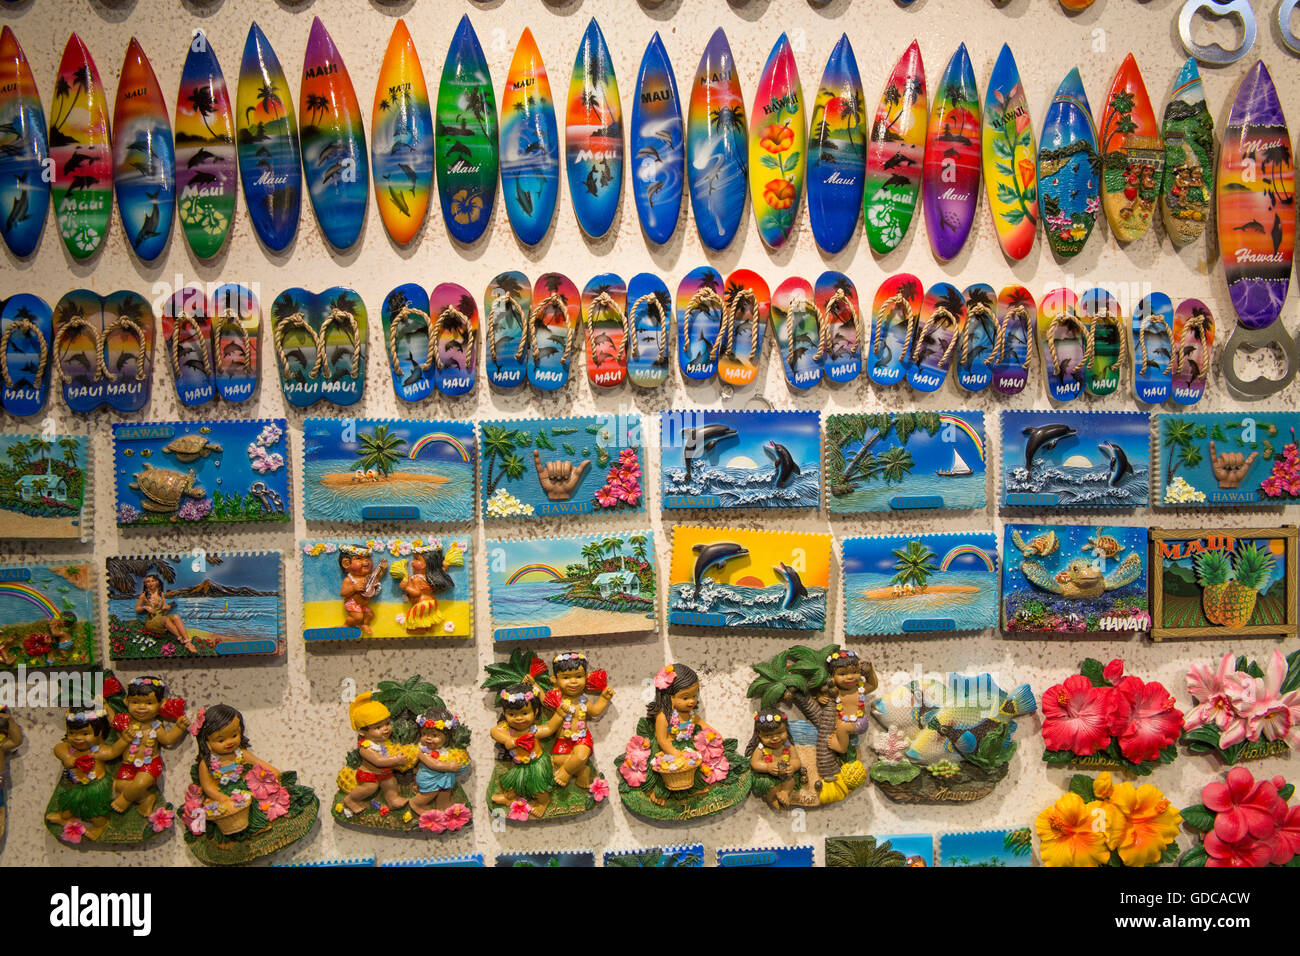 Maui,souvenirs,USA,Hawaii,America,surfboards,pictures,kitsch, - Stock Image